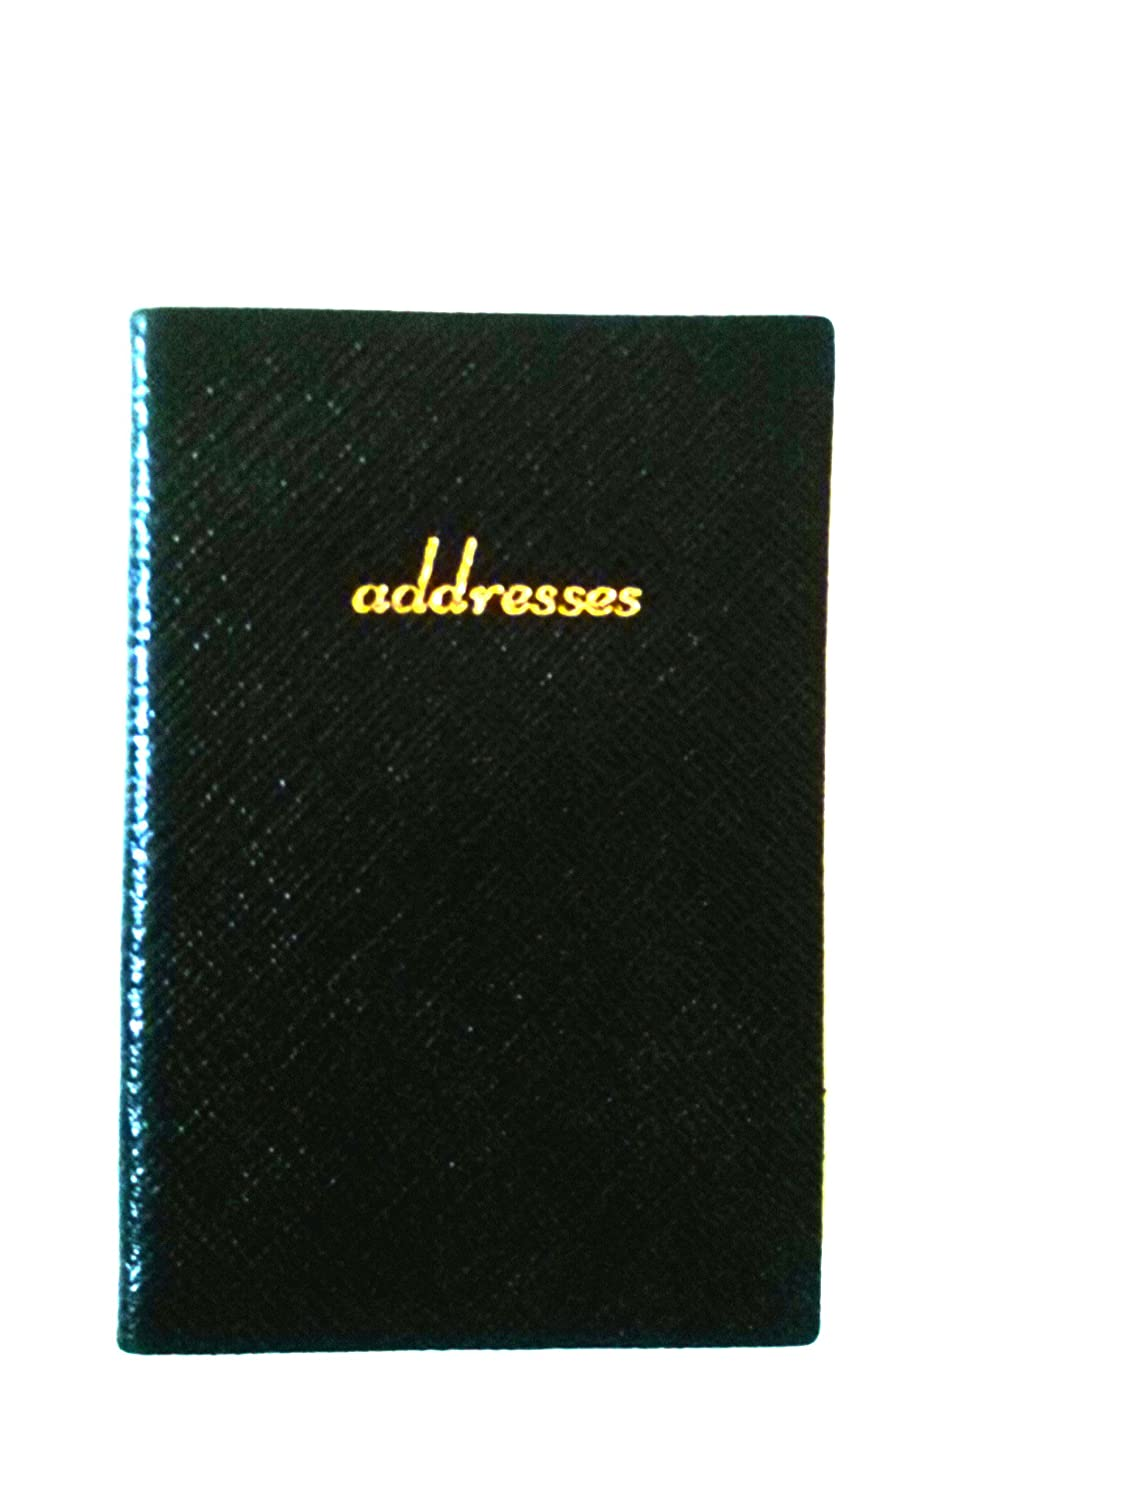 Charing Cross A42L 4 x 2 Address Book Real Leather Black